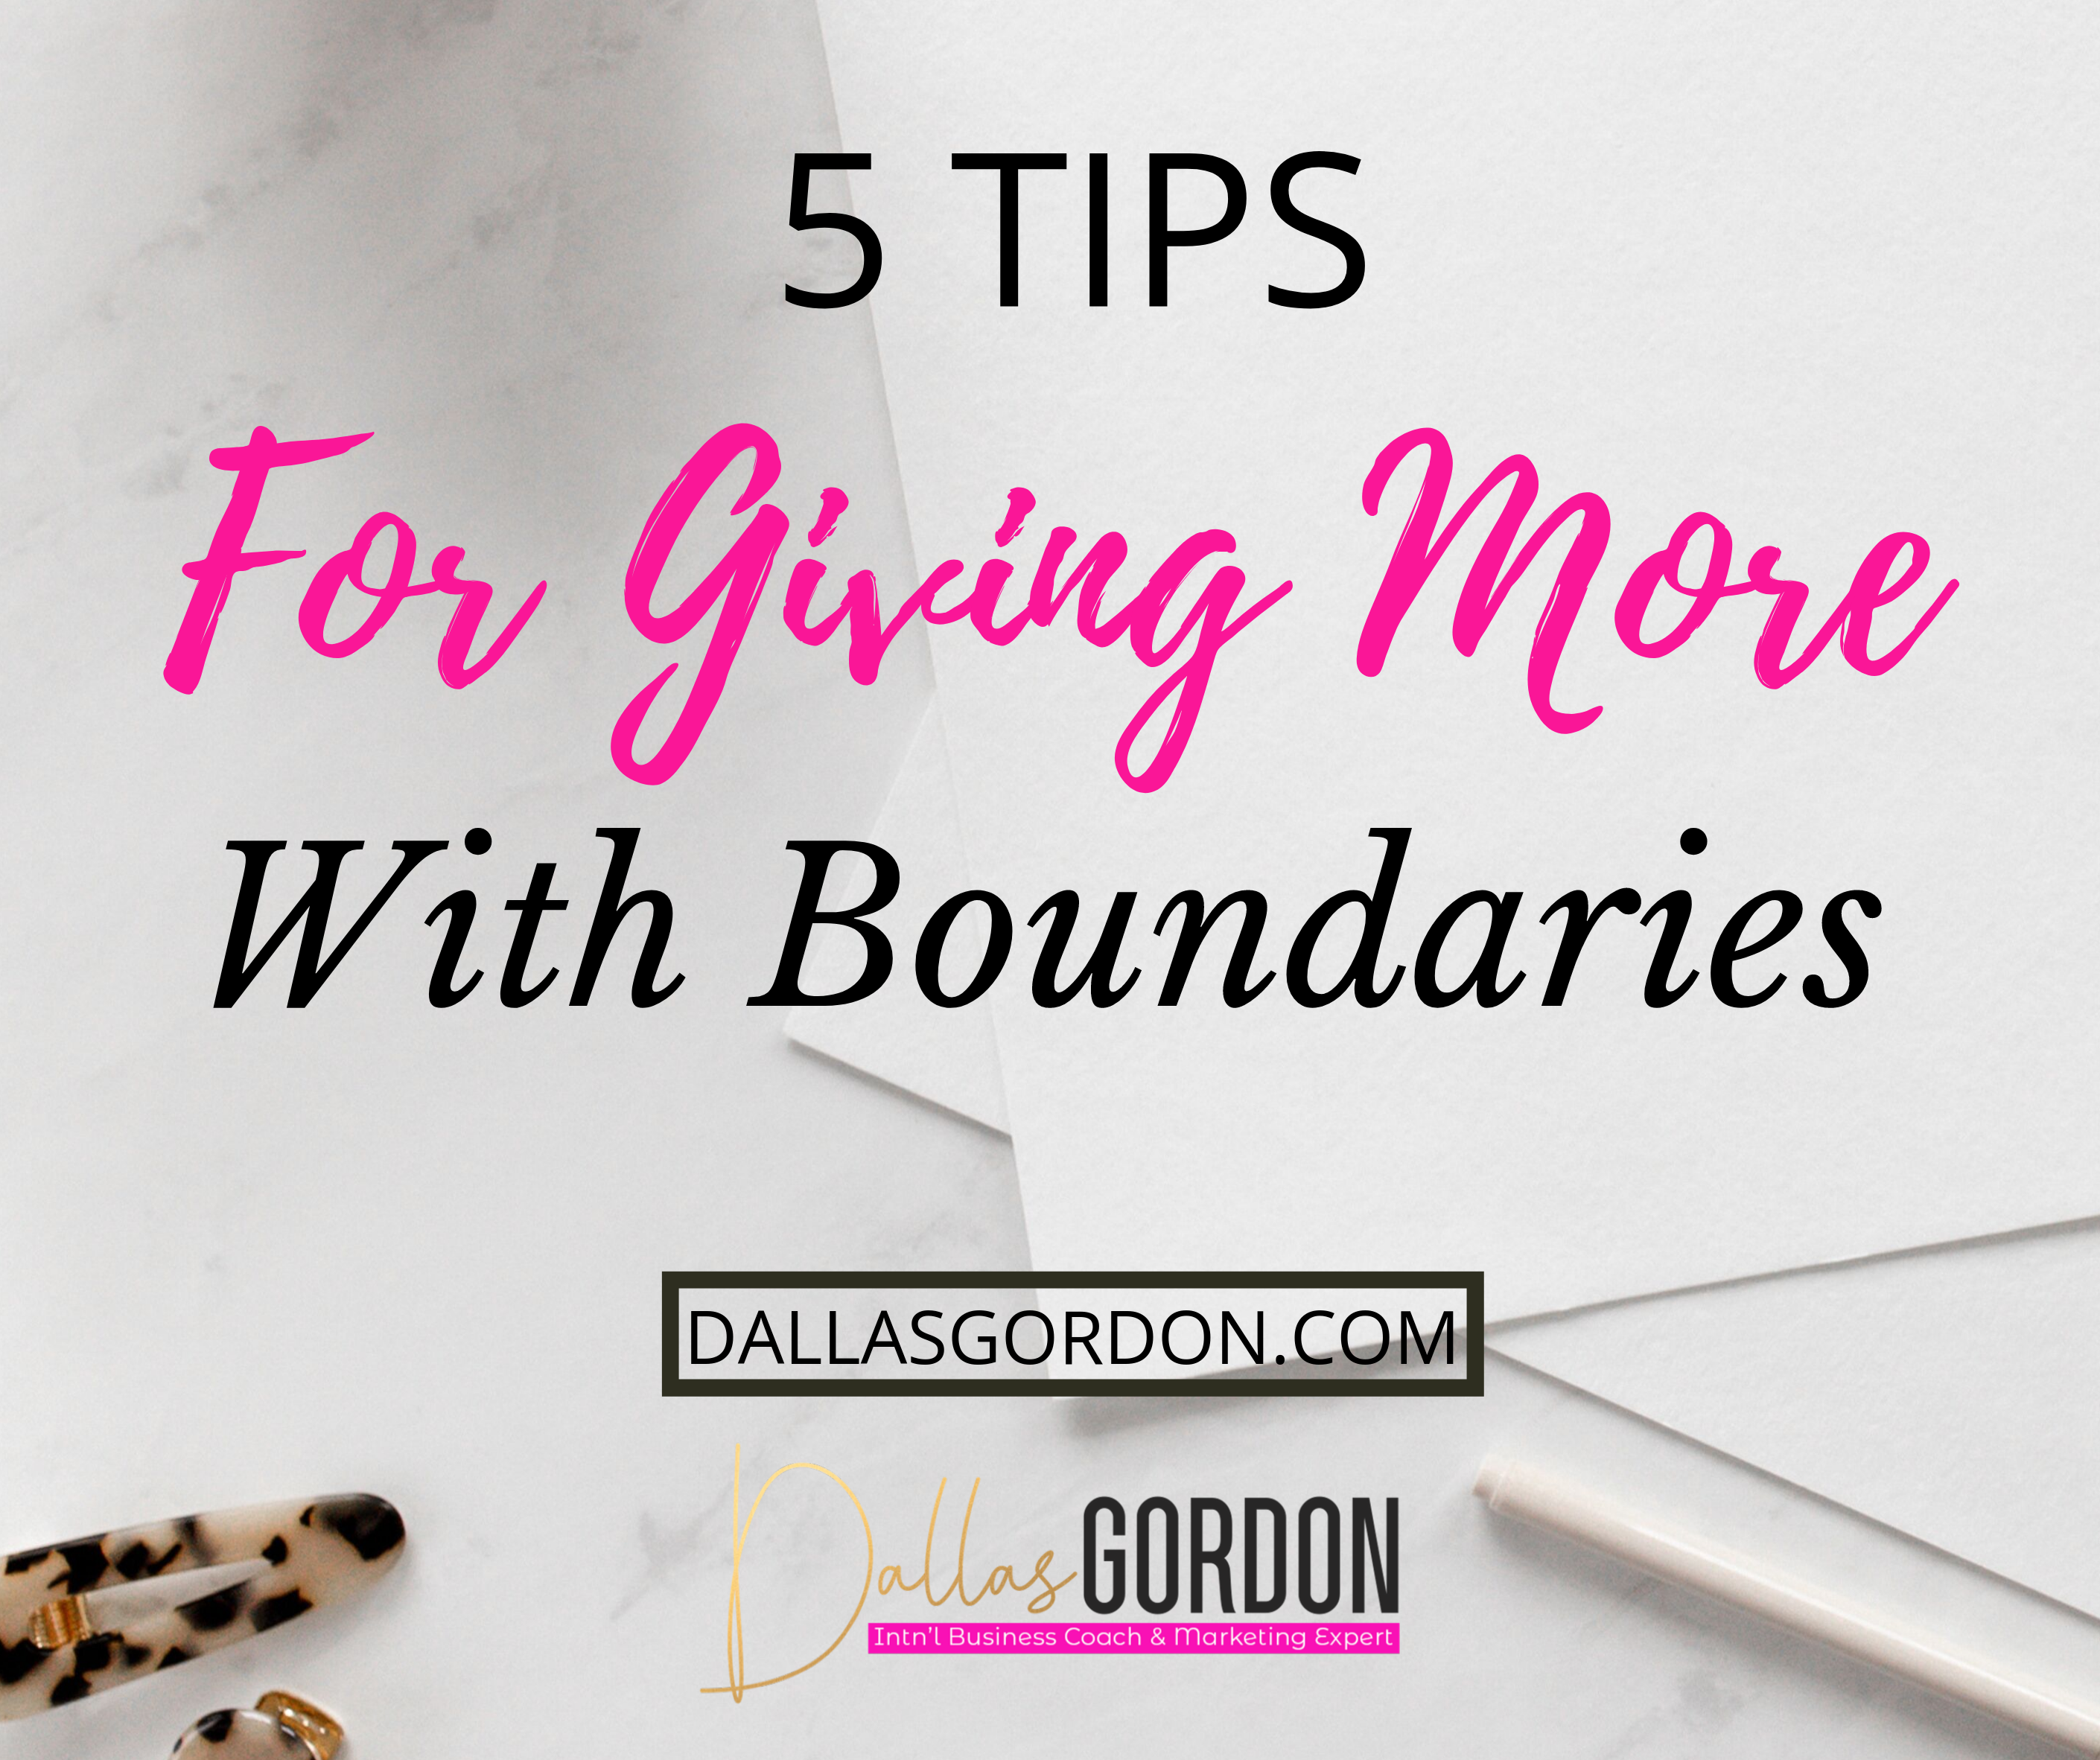 How to Give More While Maintaining Boundaries